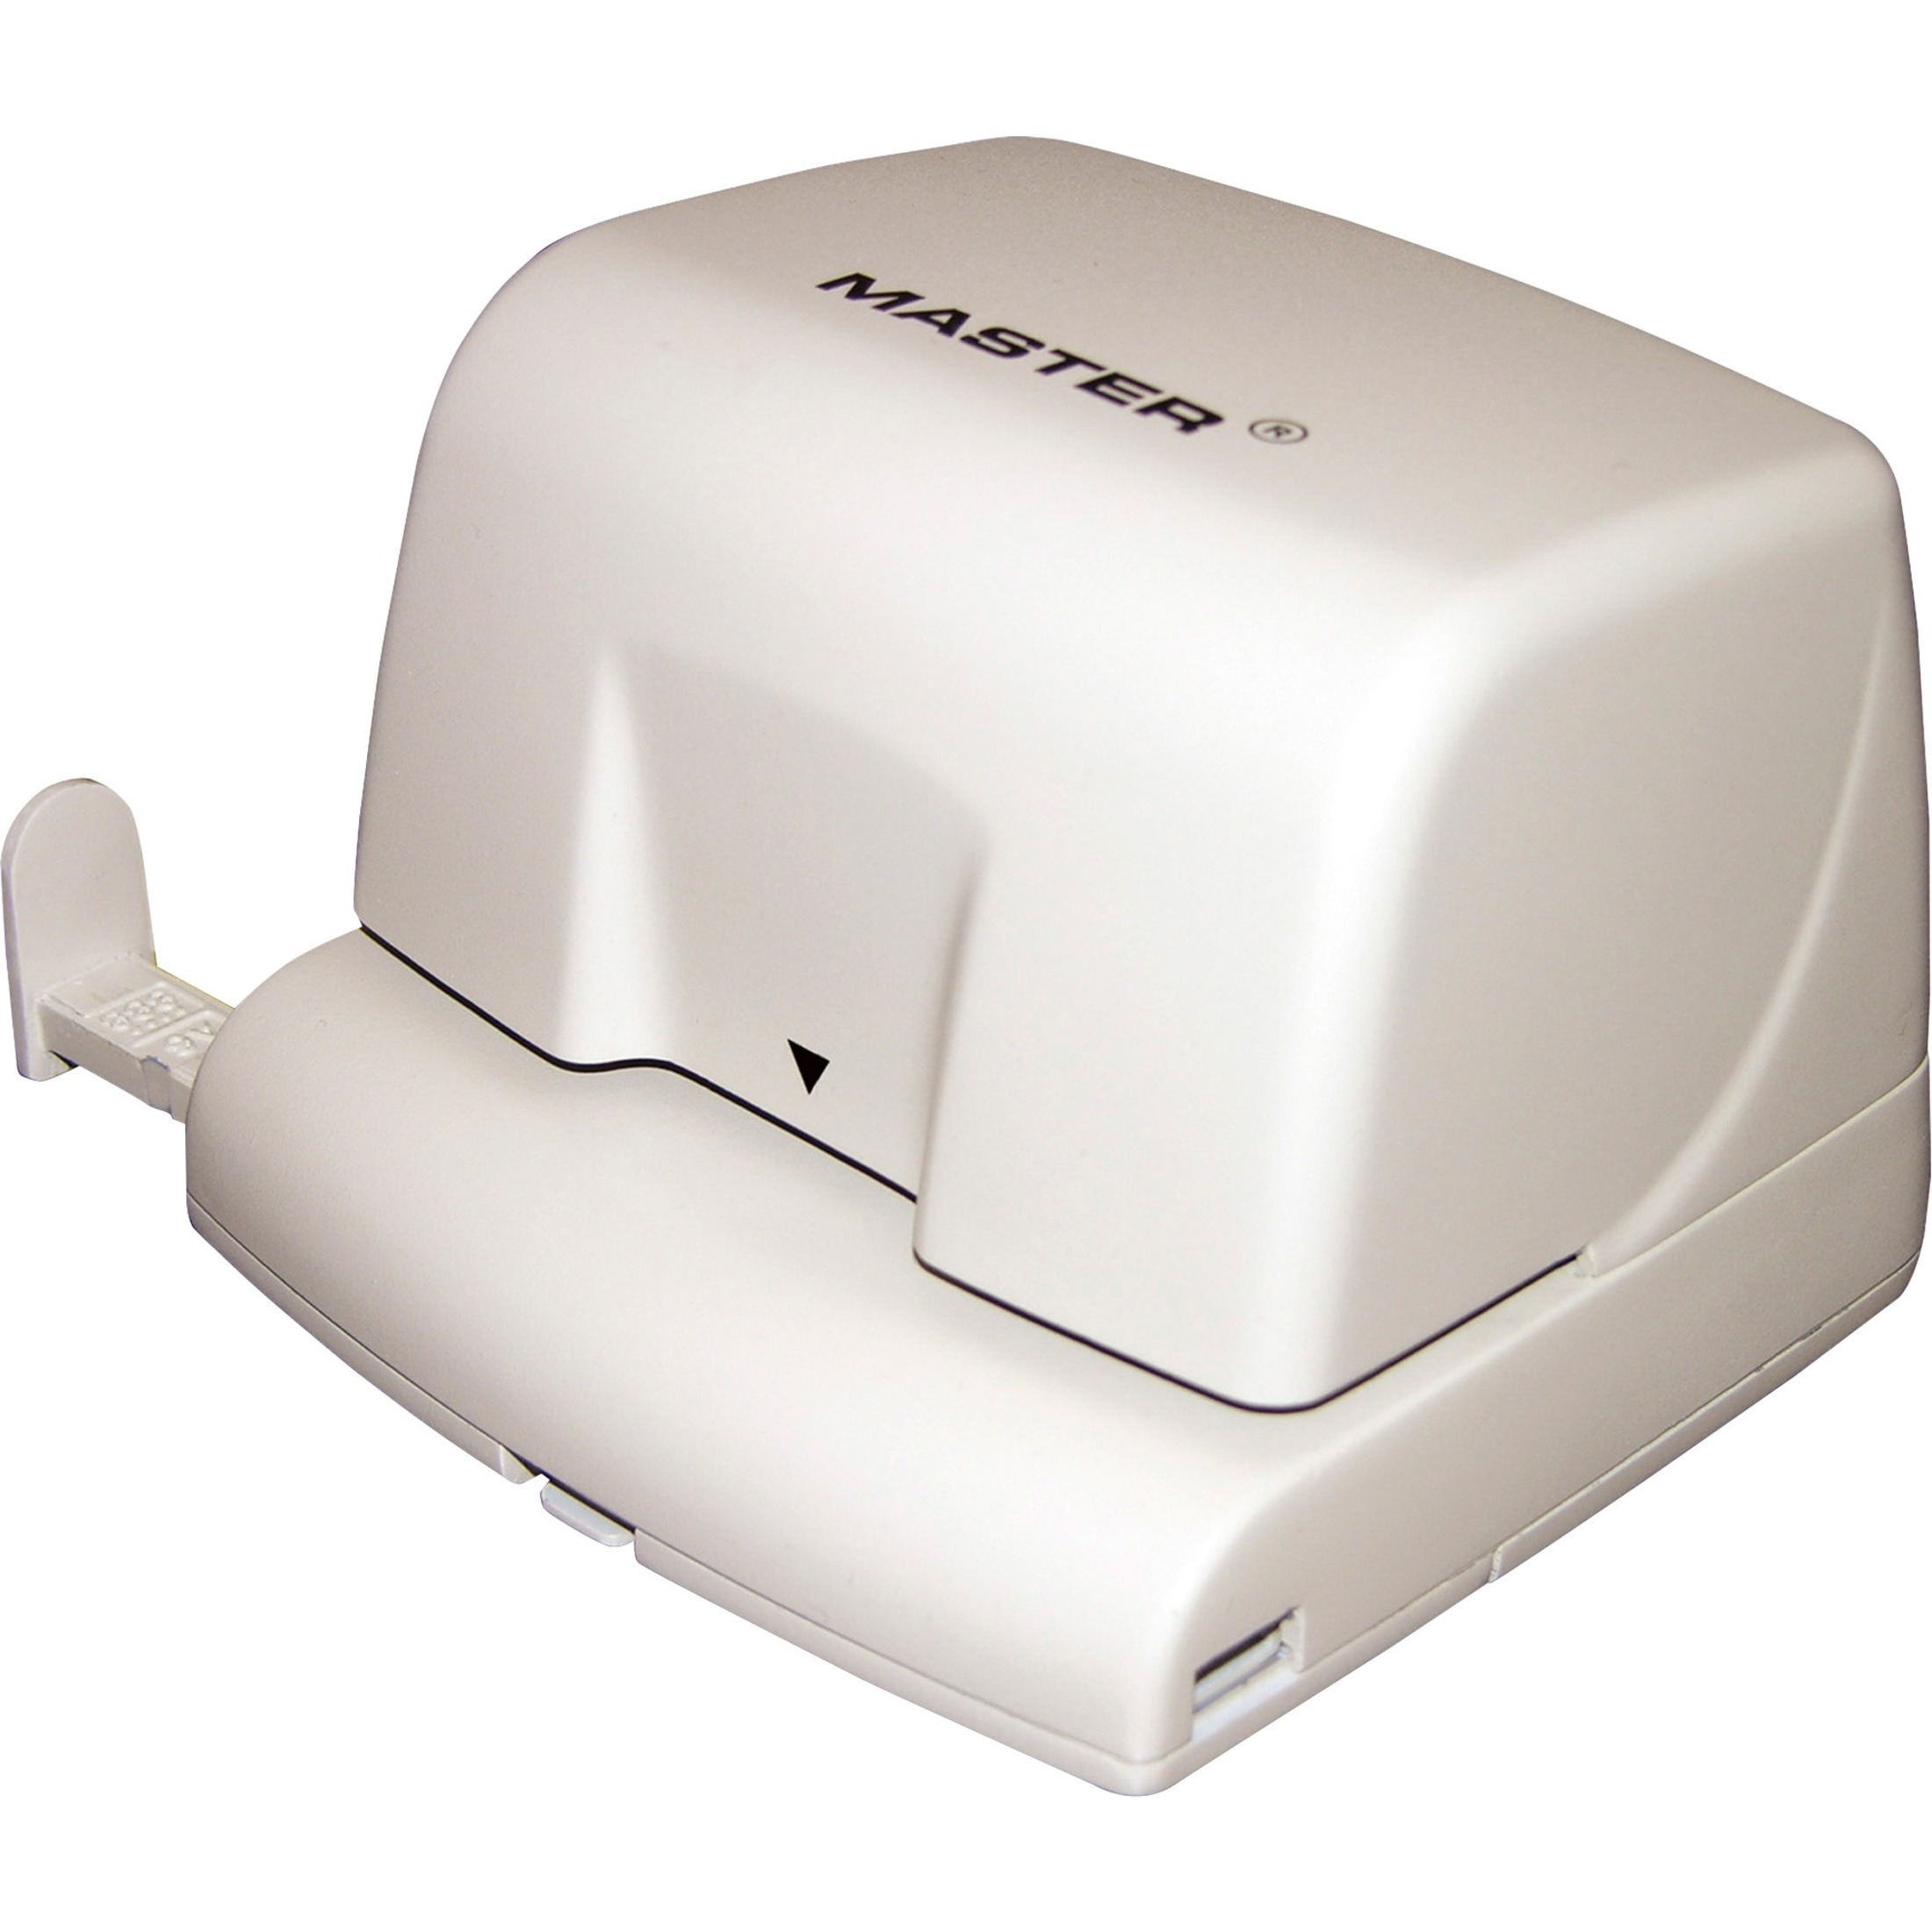 Electric Two-Hole Punch, 10-Sheet Capacity